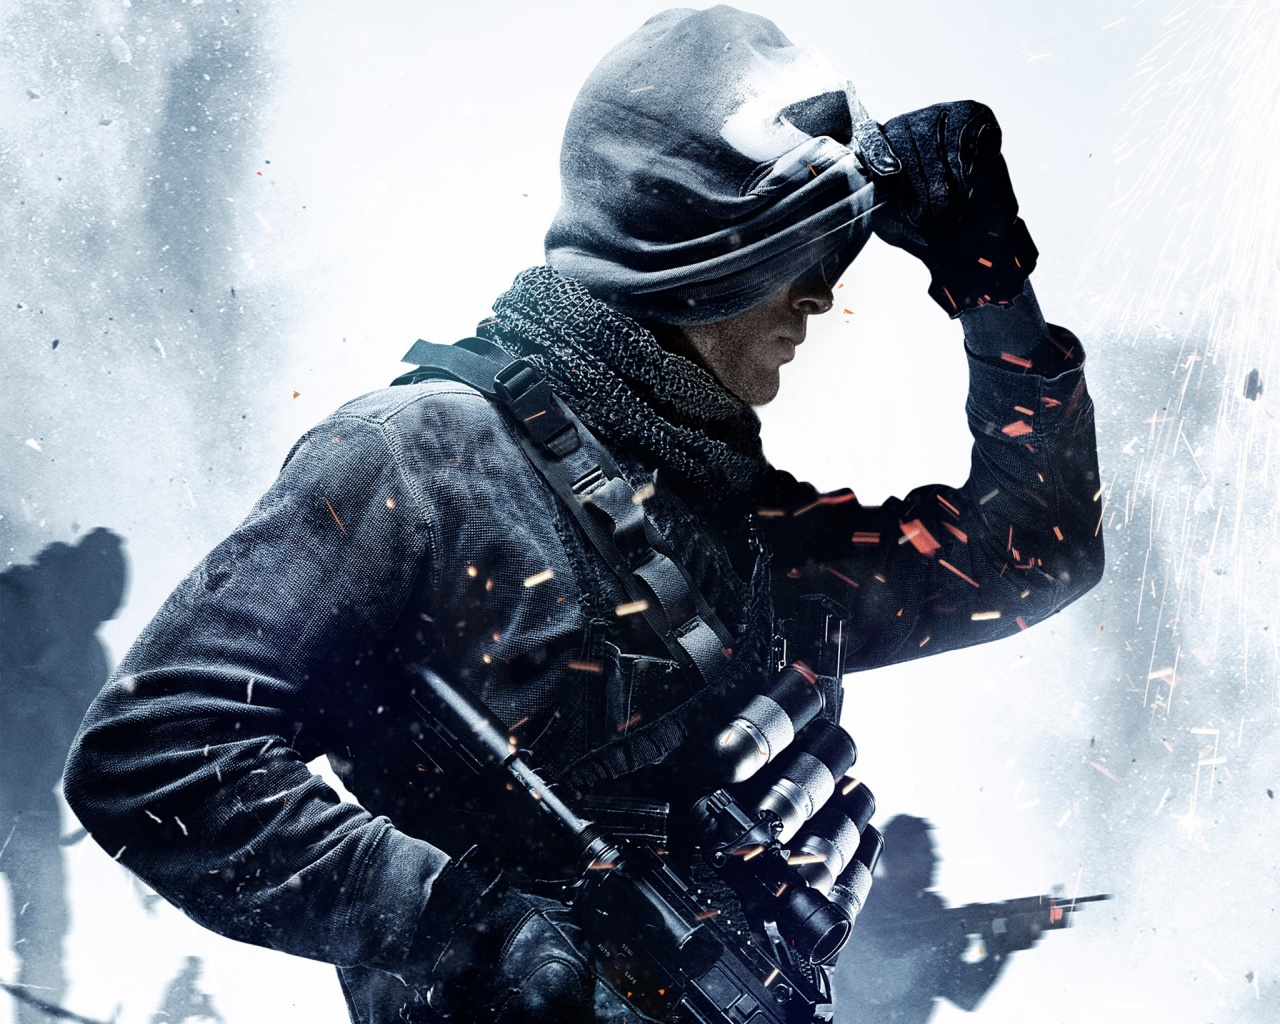 call of duty ghosts game wallpapers in jpg format for free